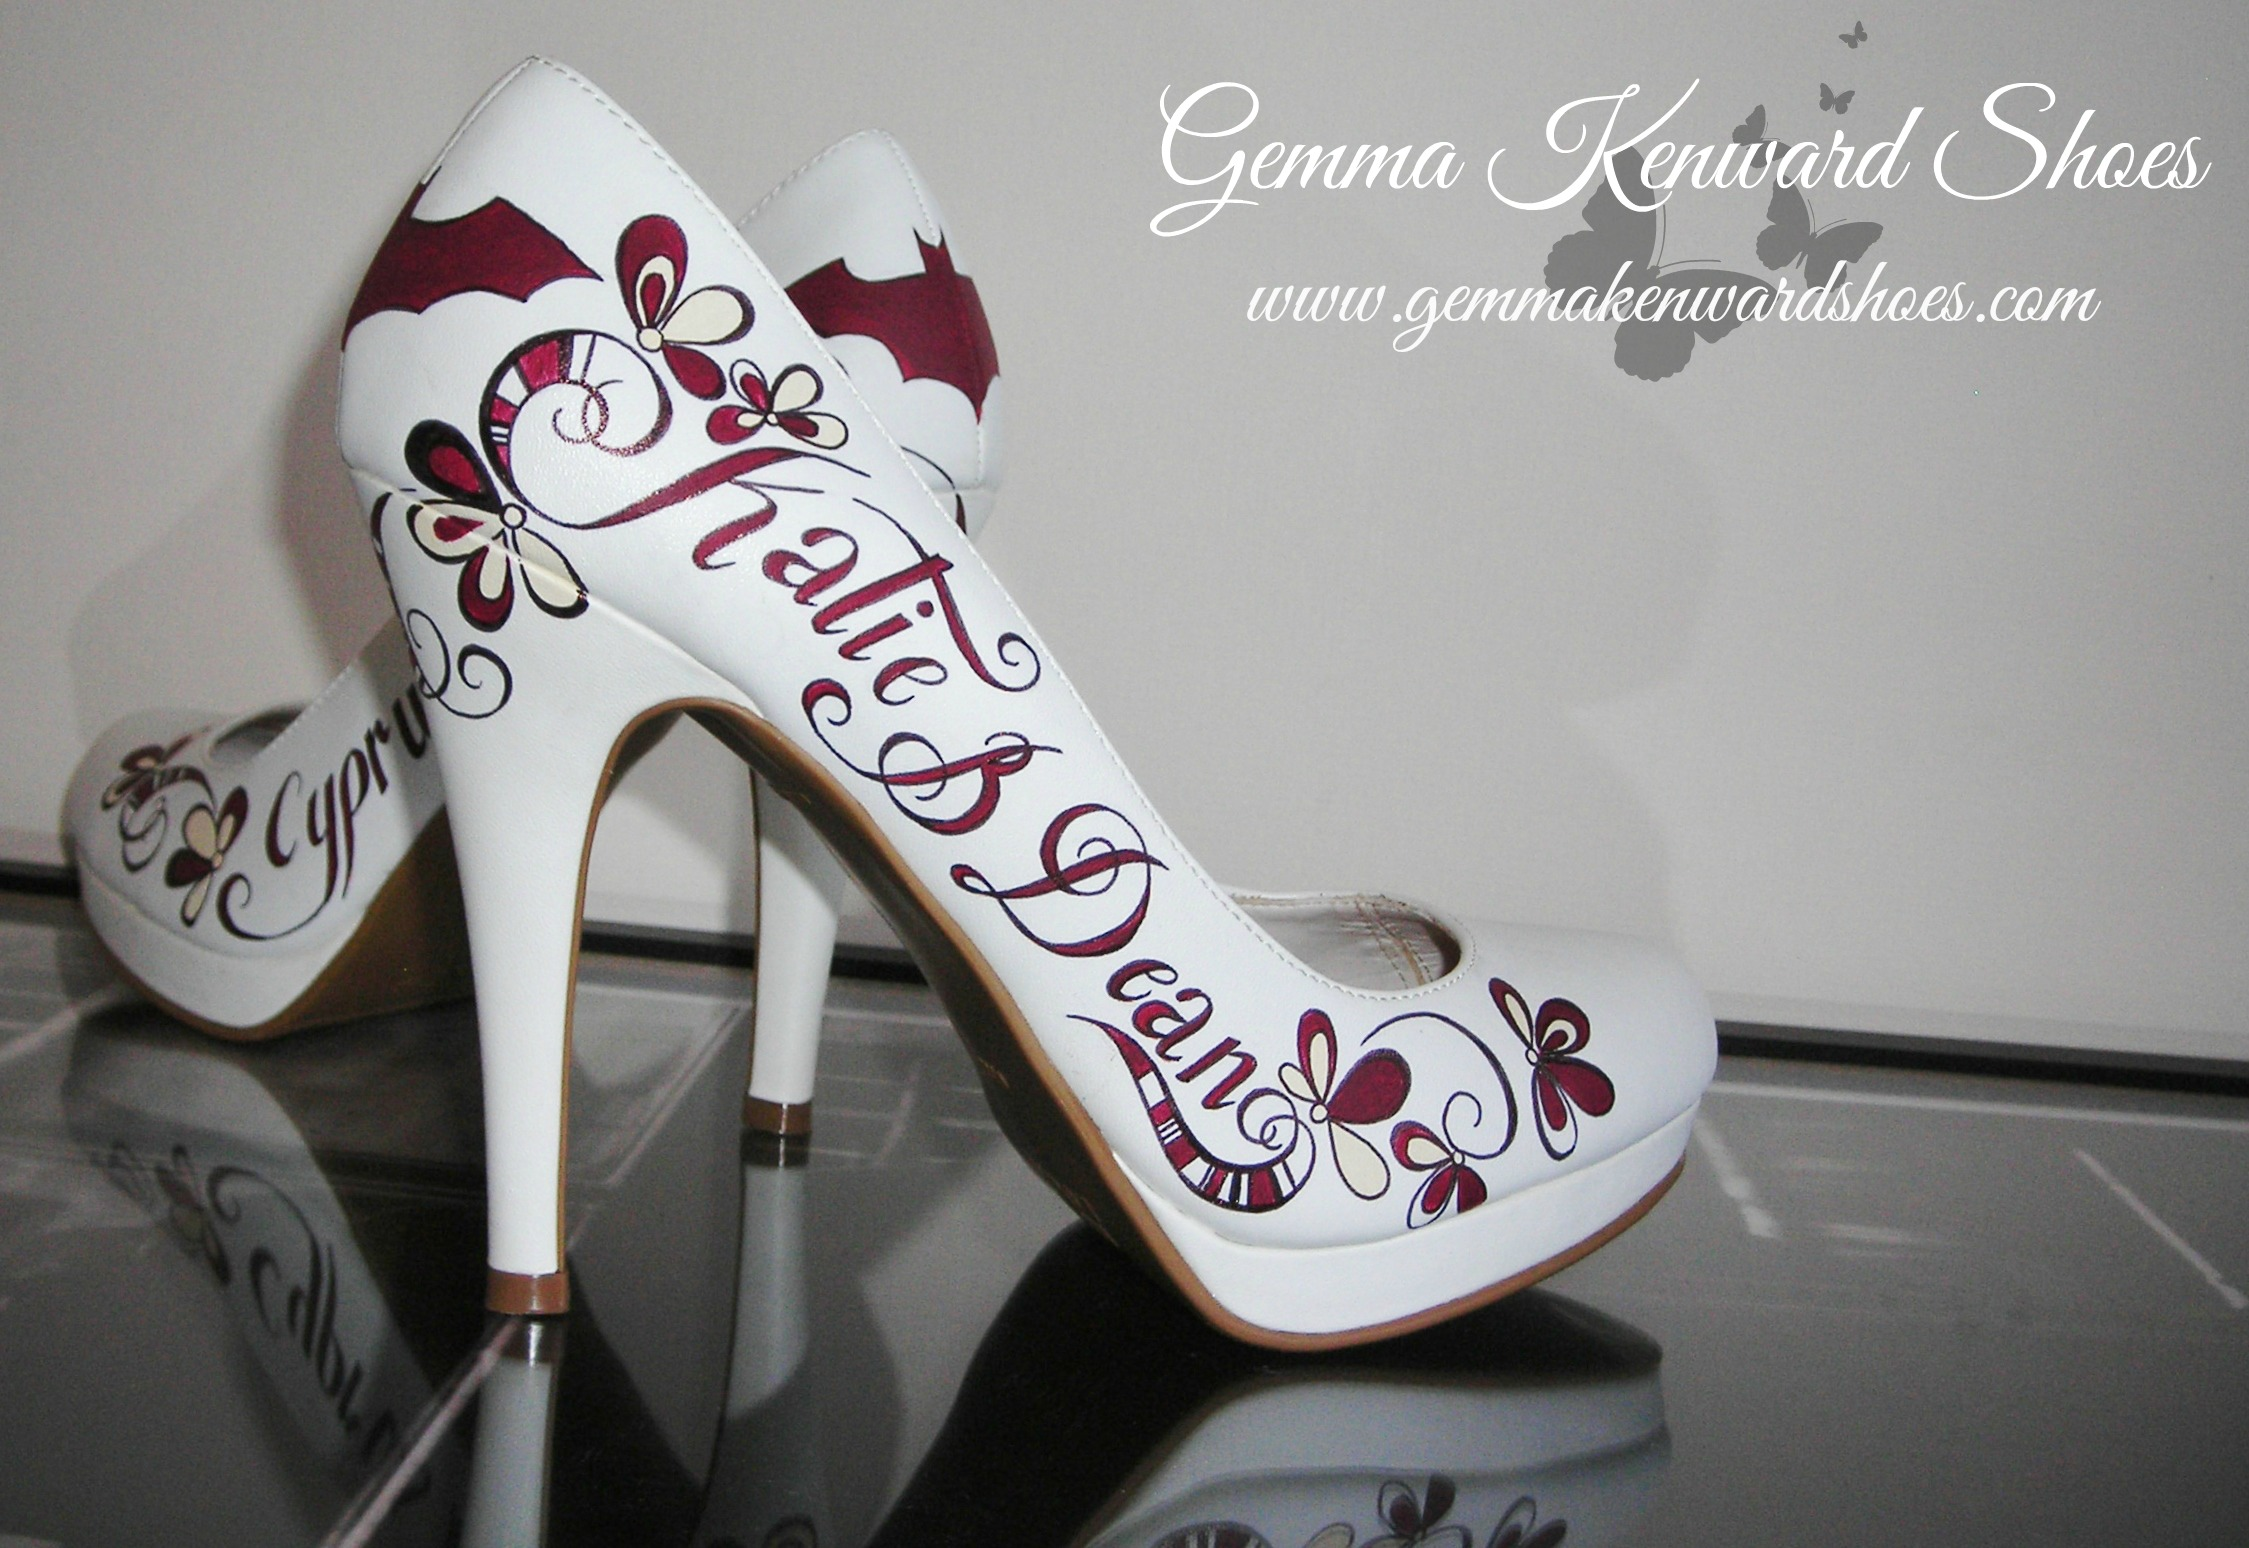 Hand painted personalised wedding shoes with Batman symbols, stripes and flowers